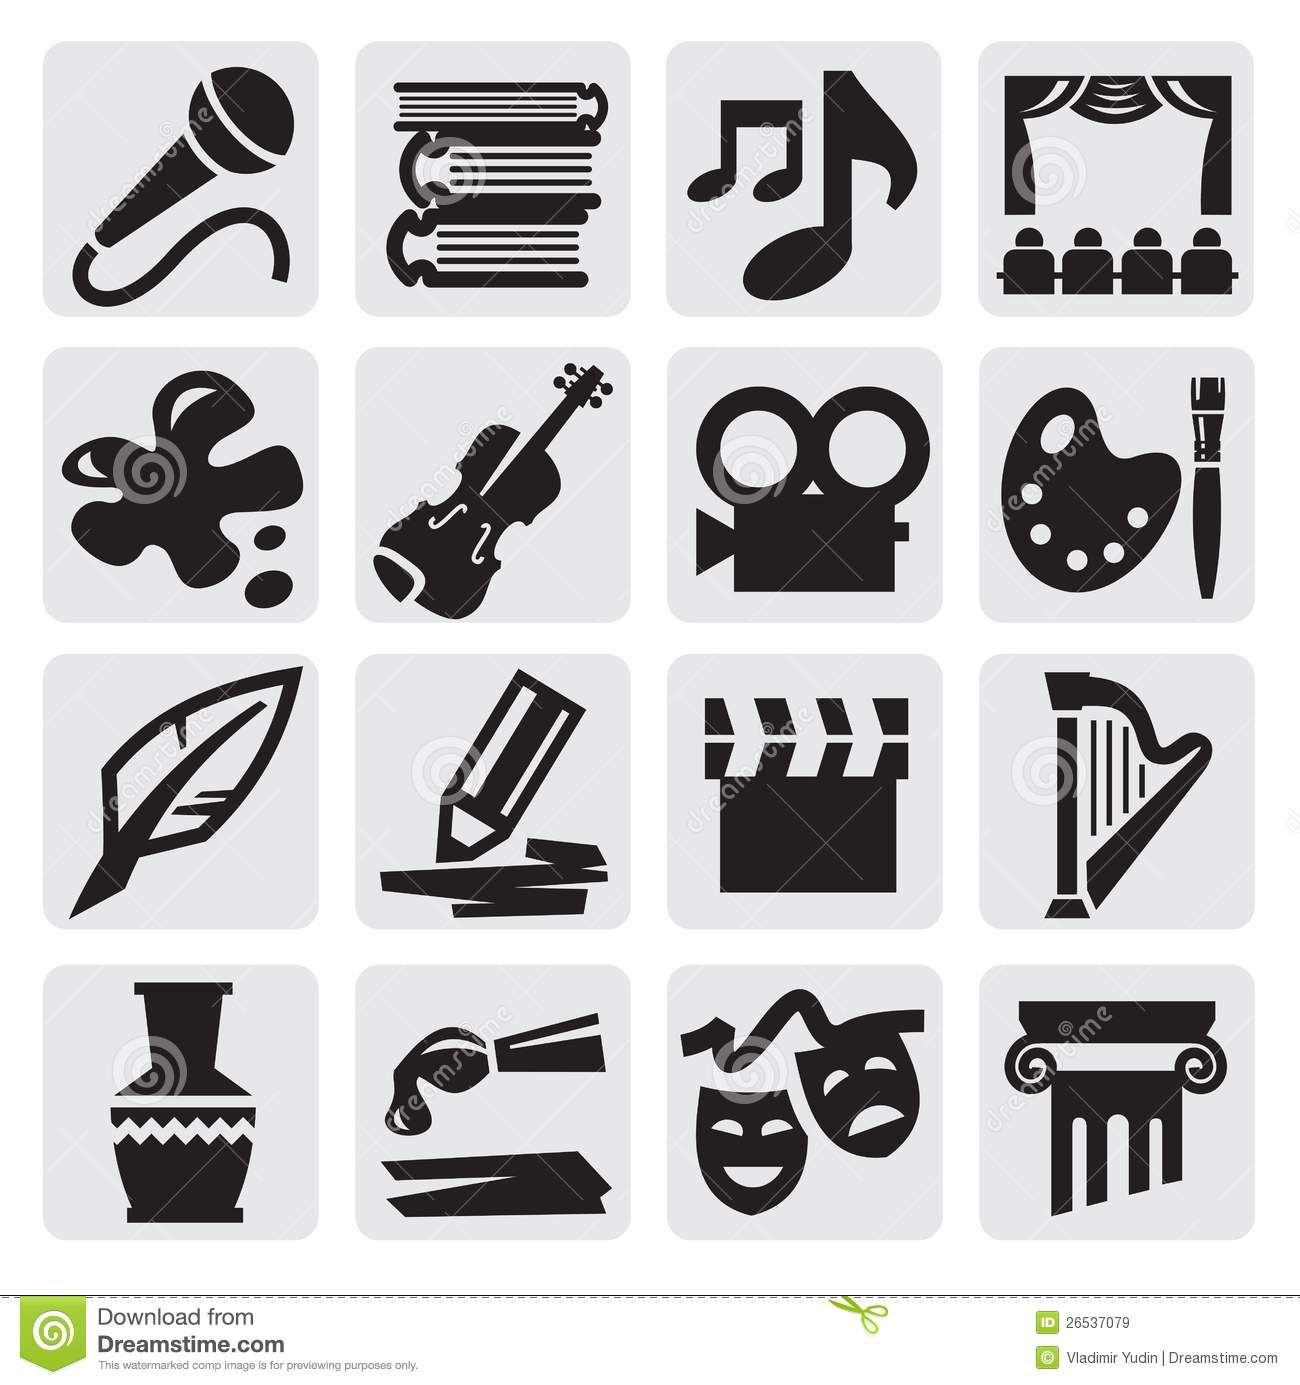 summer-vacation-clip-art-black-and-white